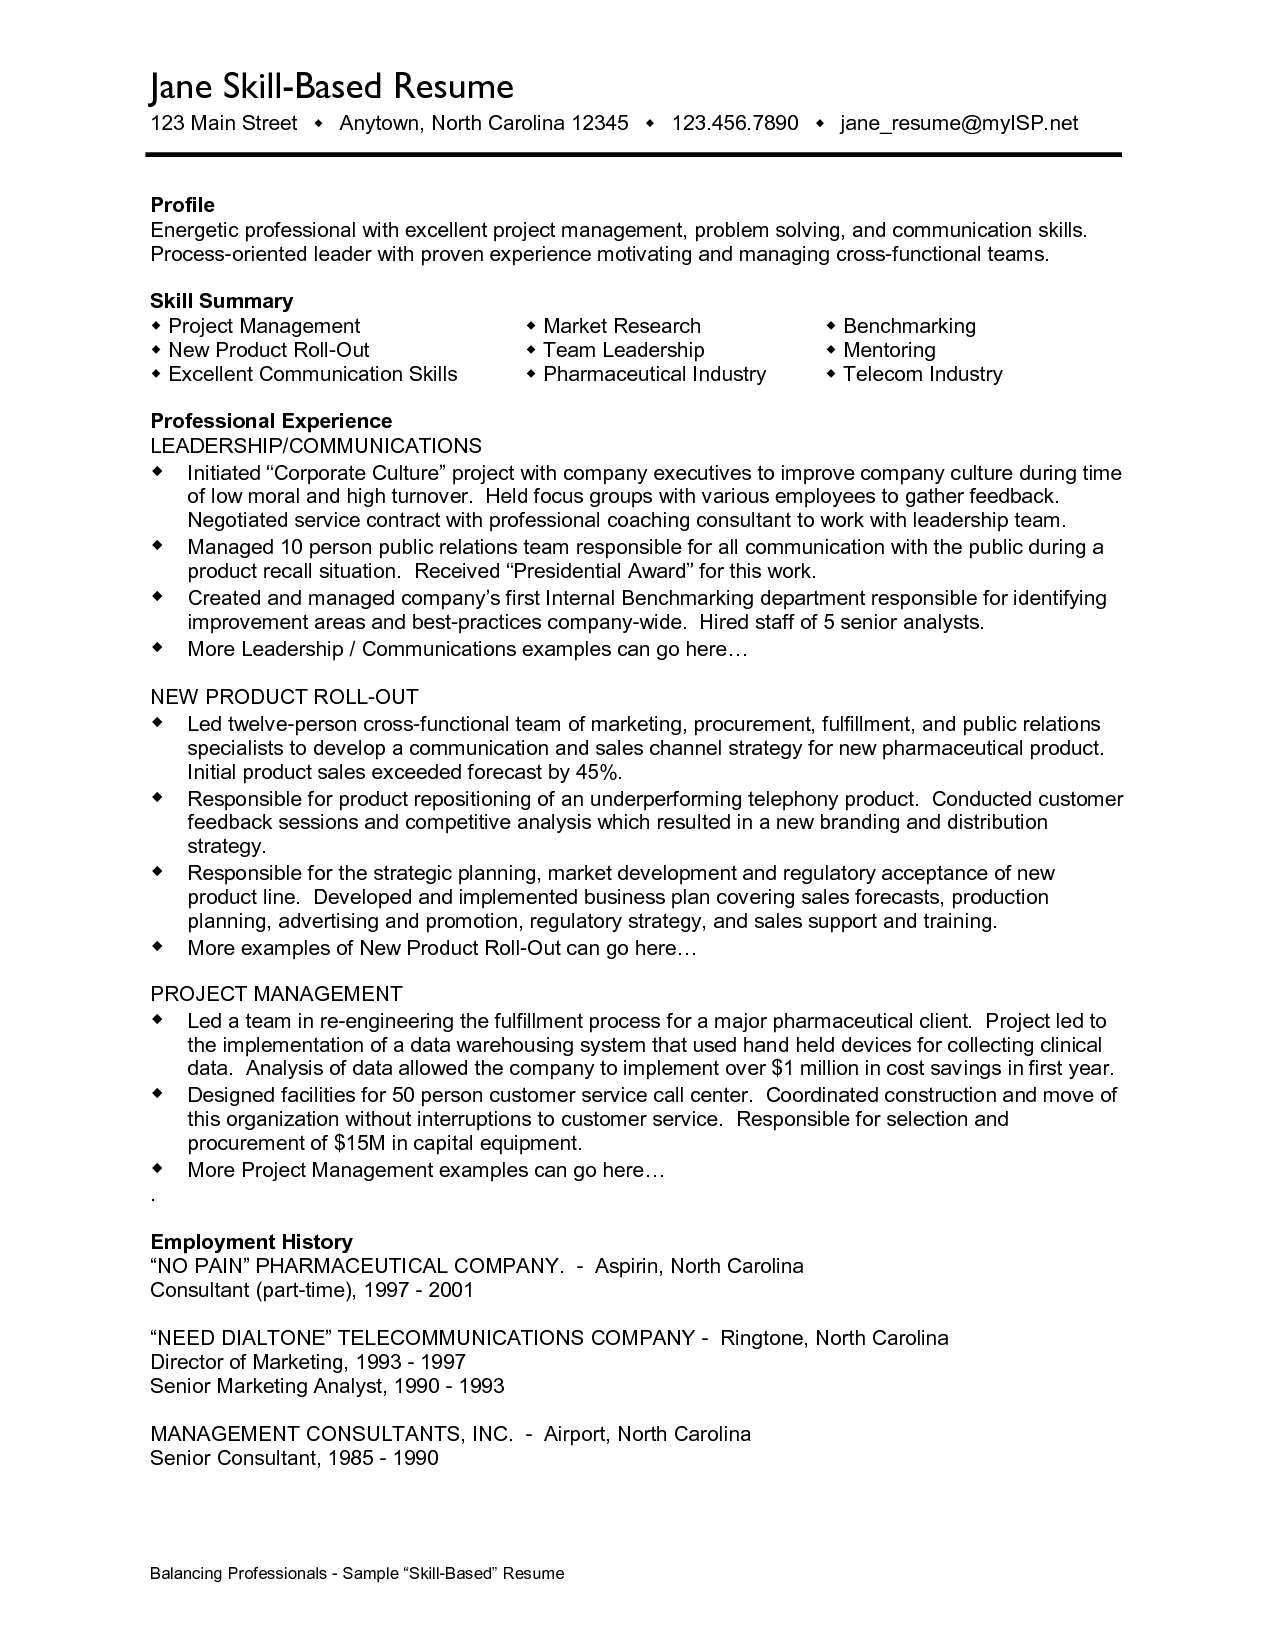 professional abilities for resume